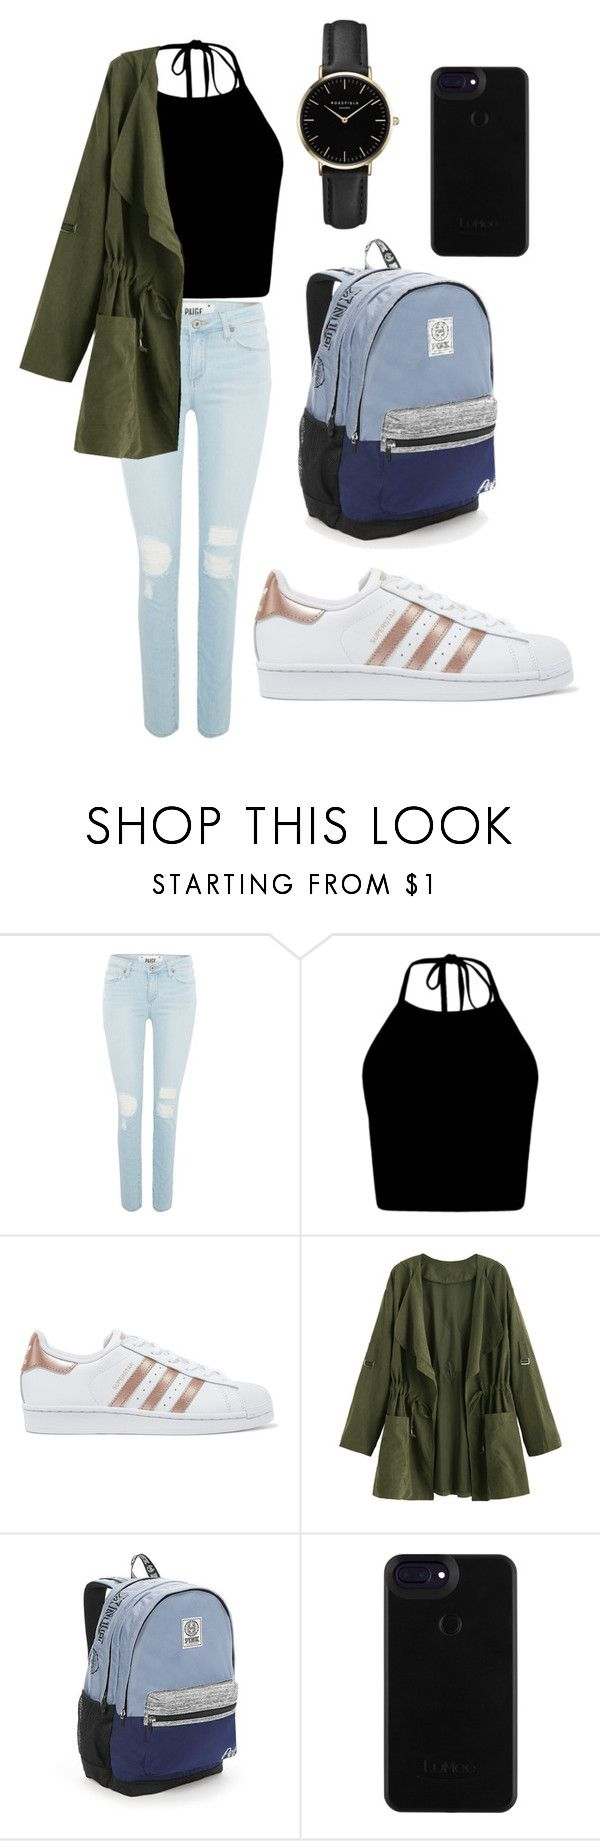 """""""school 101"""" by fashionblogger2122 on Polyvore featuring Paige Denim, adidas Originals, Victoria's Secret and ROSEFIELD"""